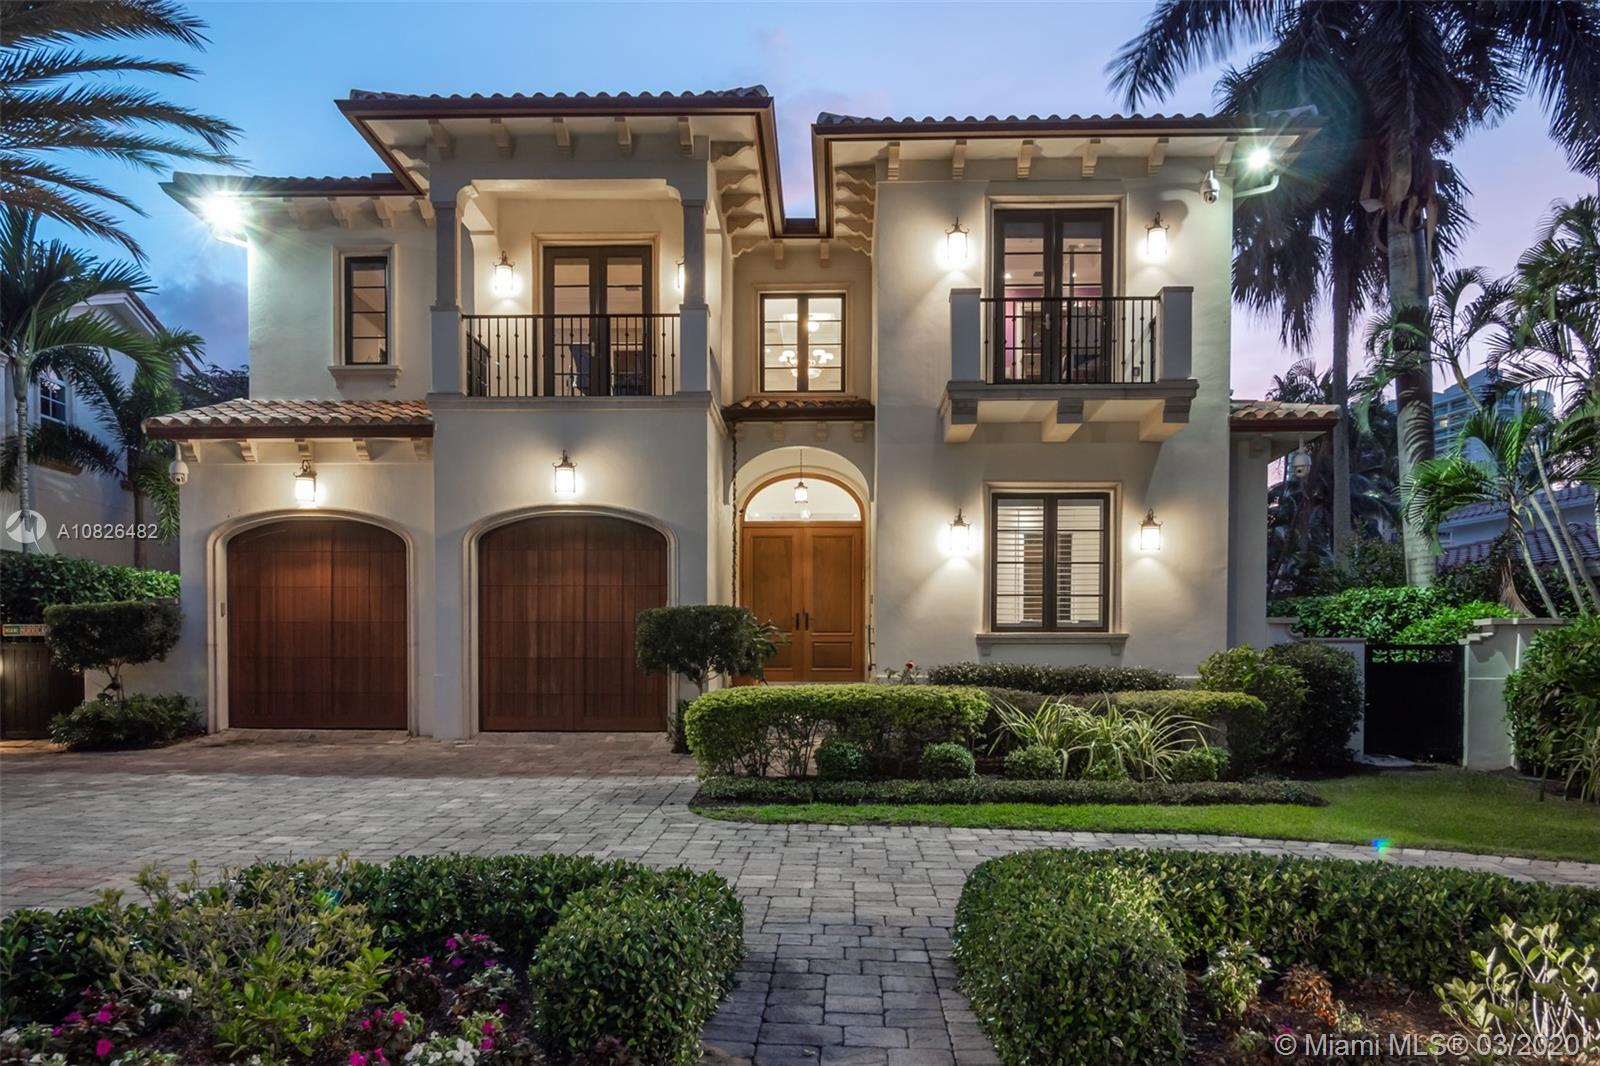 264 S Parkway Pkwy Luxury Real Estate